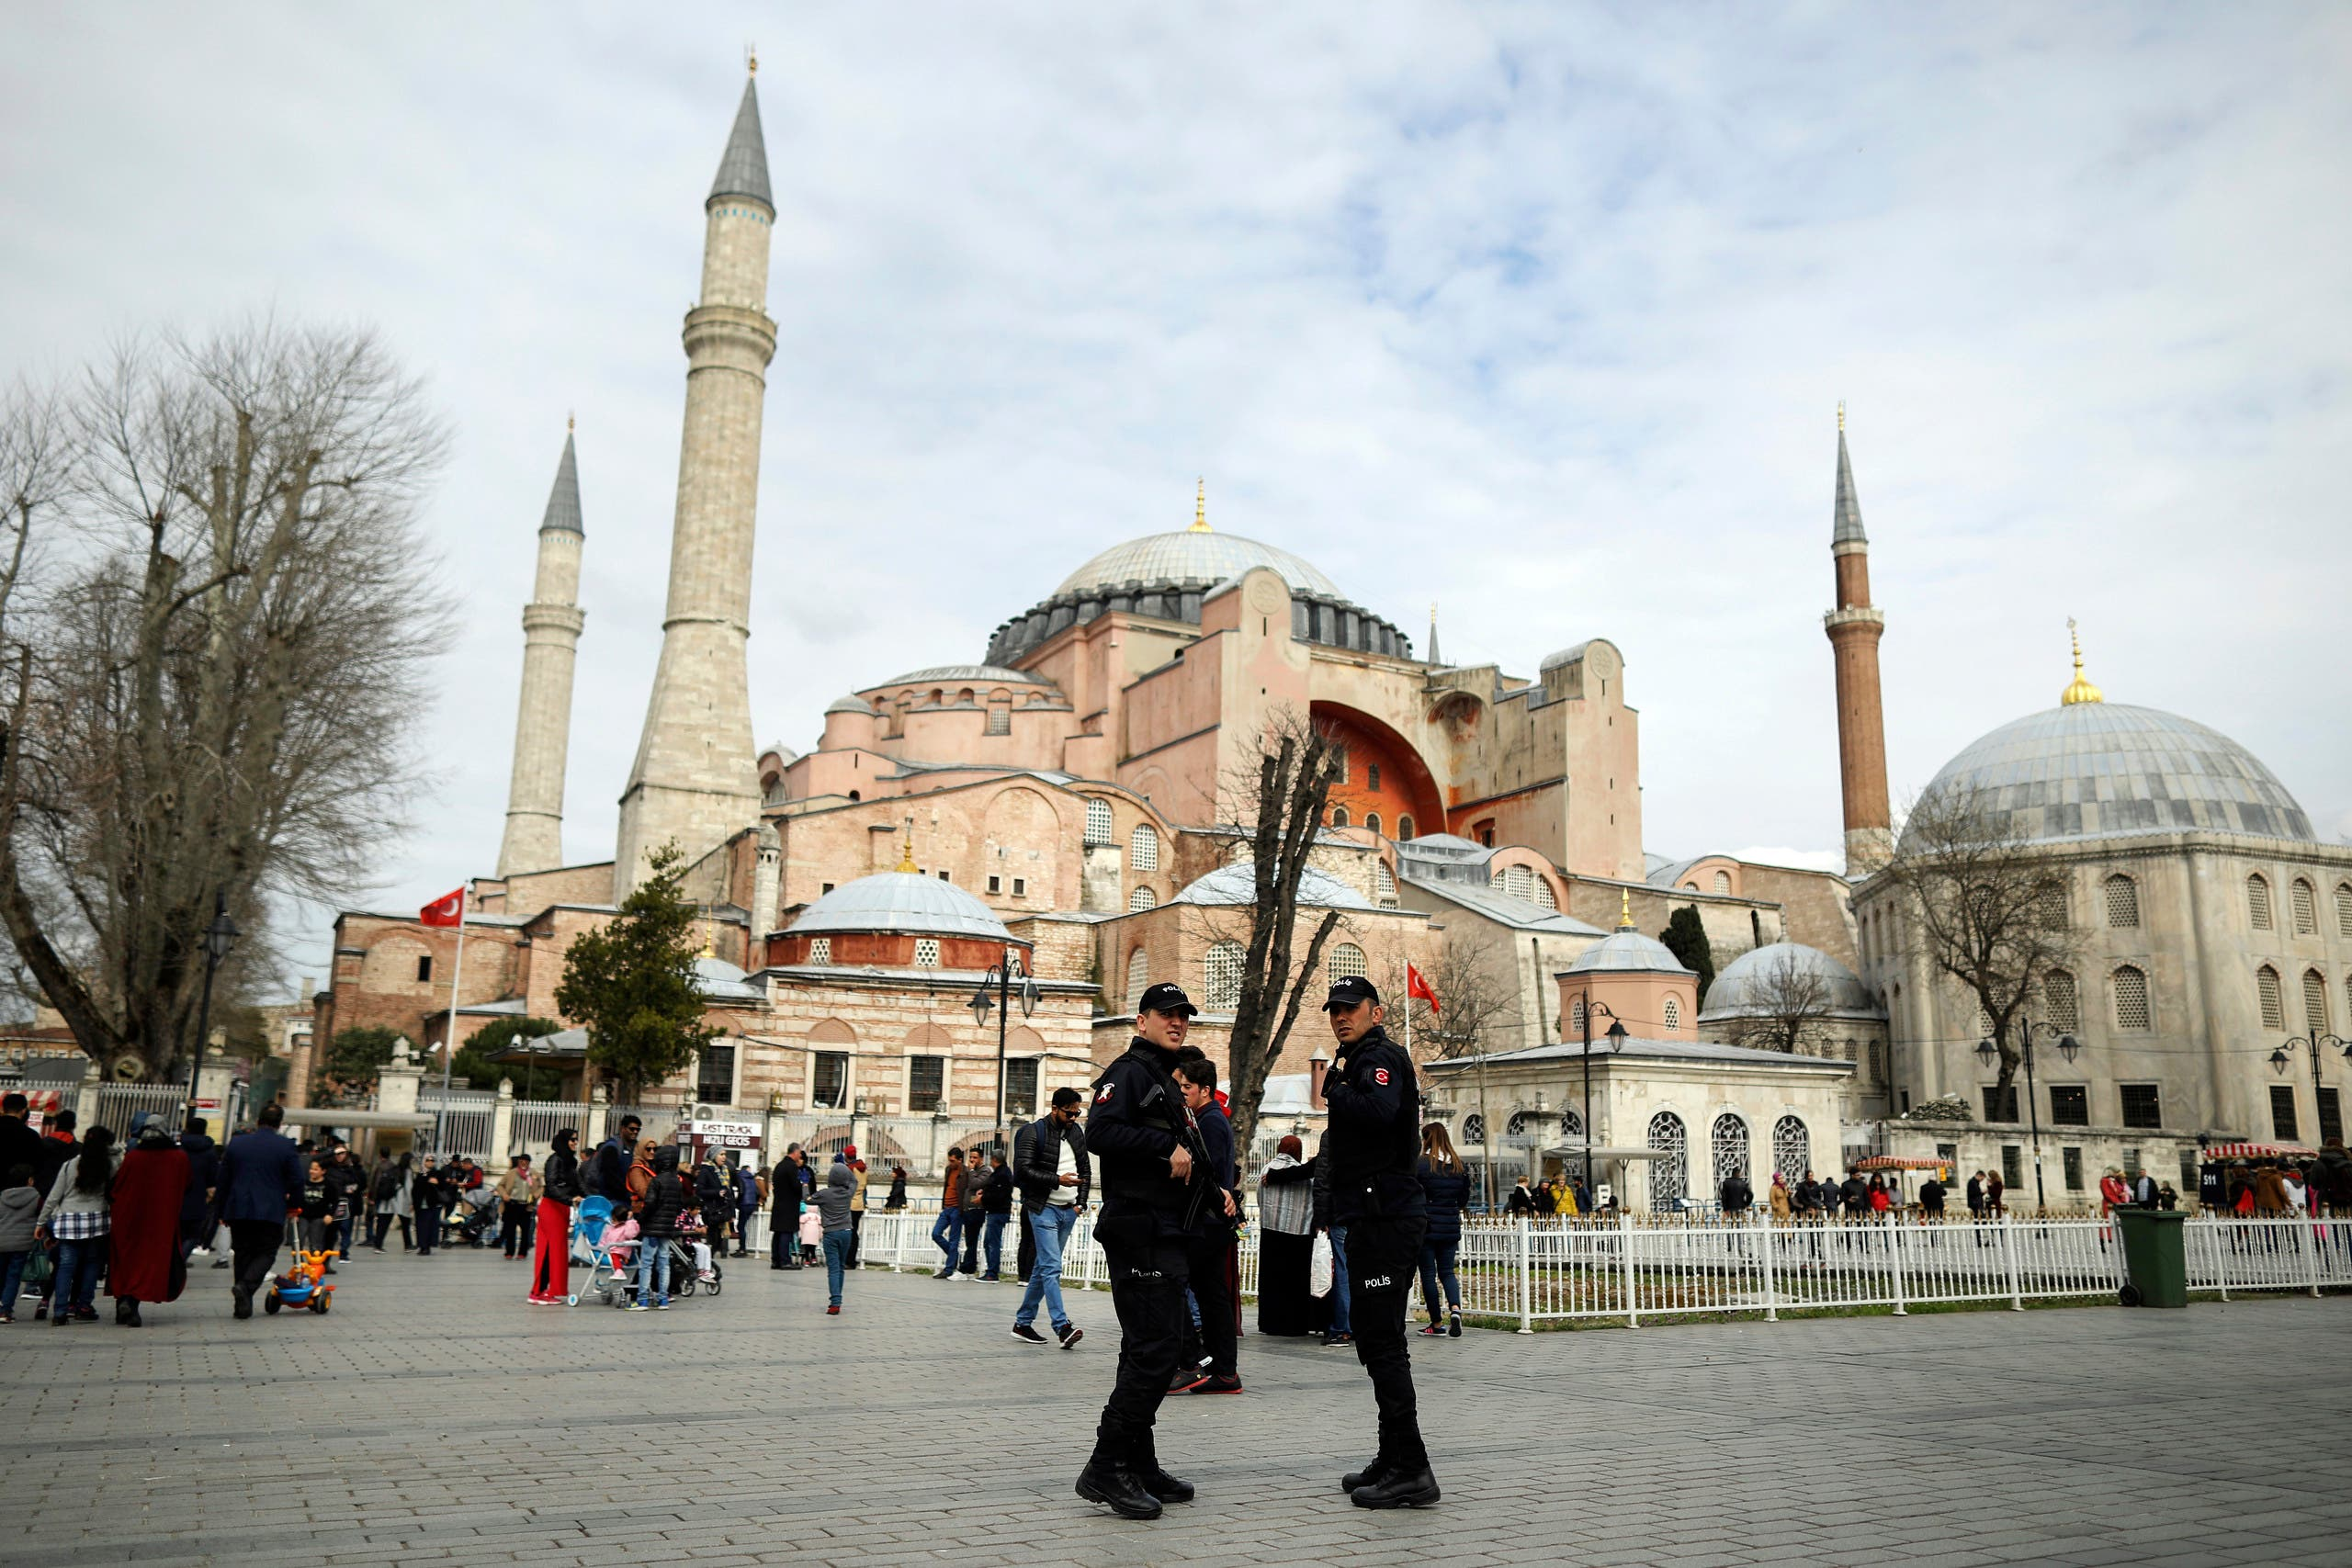 Turkish police secure the plaza in front of the Byzantine-era Hagia Sophia, one of Istanbul's main tourist attractions Hagia Sophia in Istanbul, Turkey, Friday, March 15, 2019. (AP)